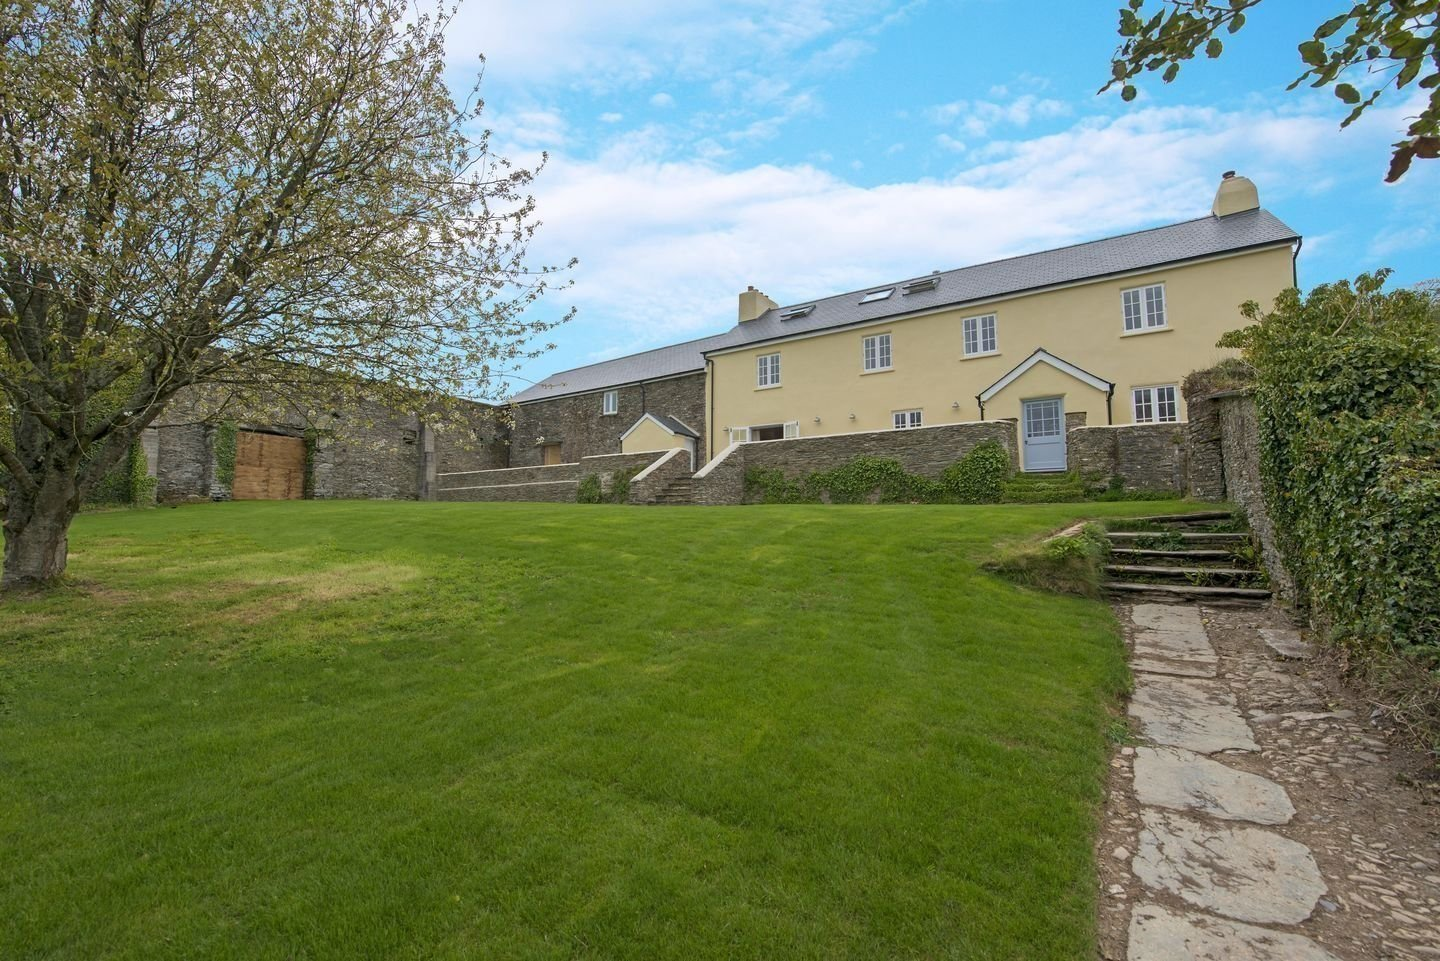 Lower Widdicombe Farm property management in Beesands